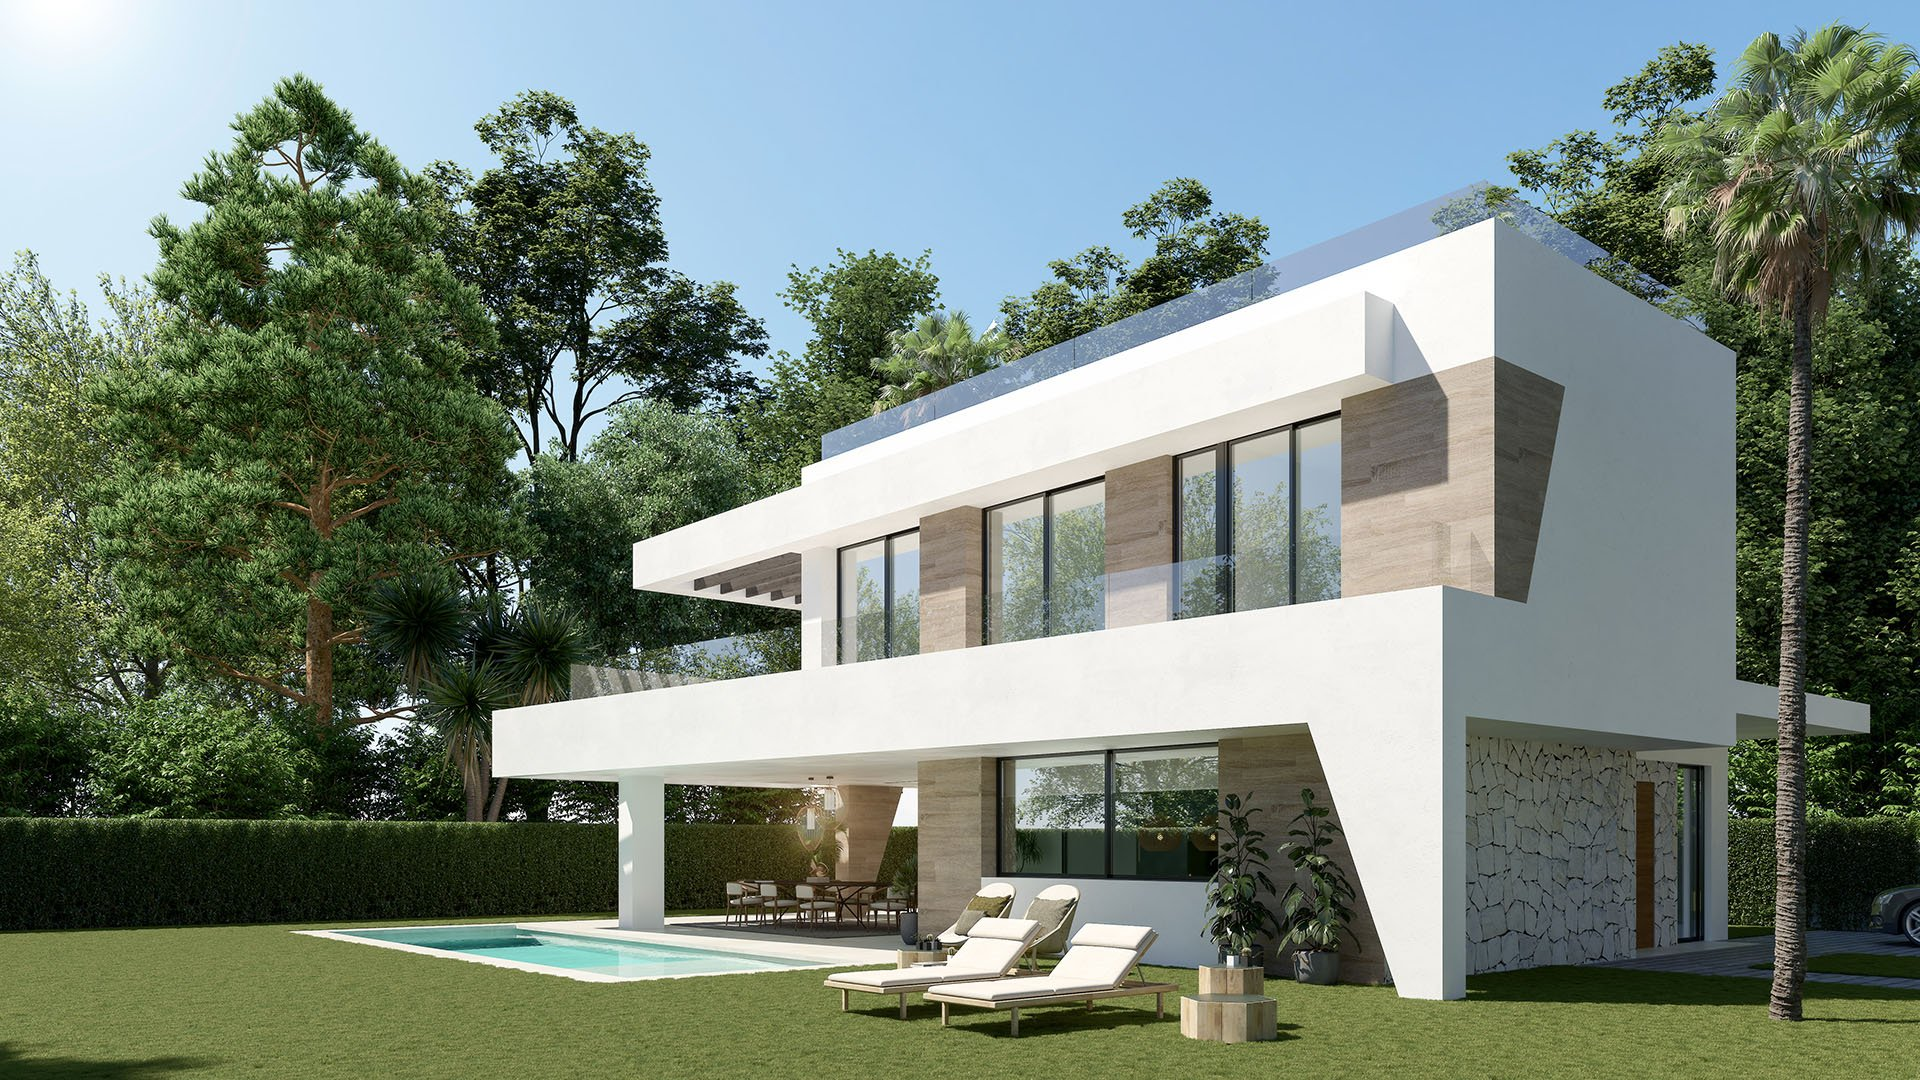 Estrella del Mar II: Modern villa within walking distance from the most beautiful beaches of Marbella